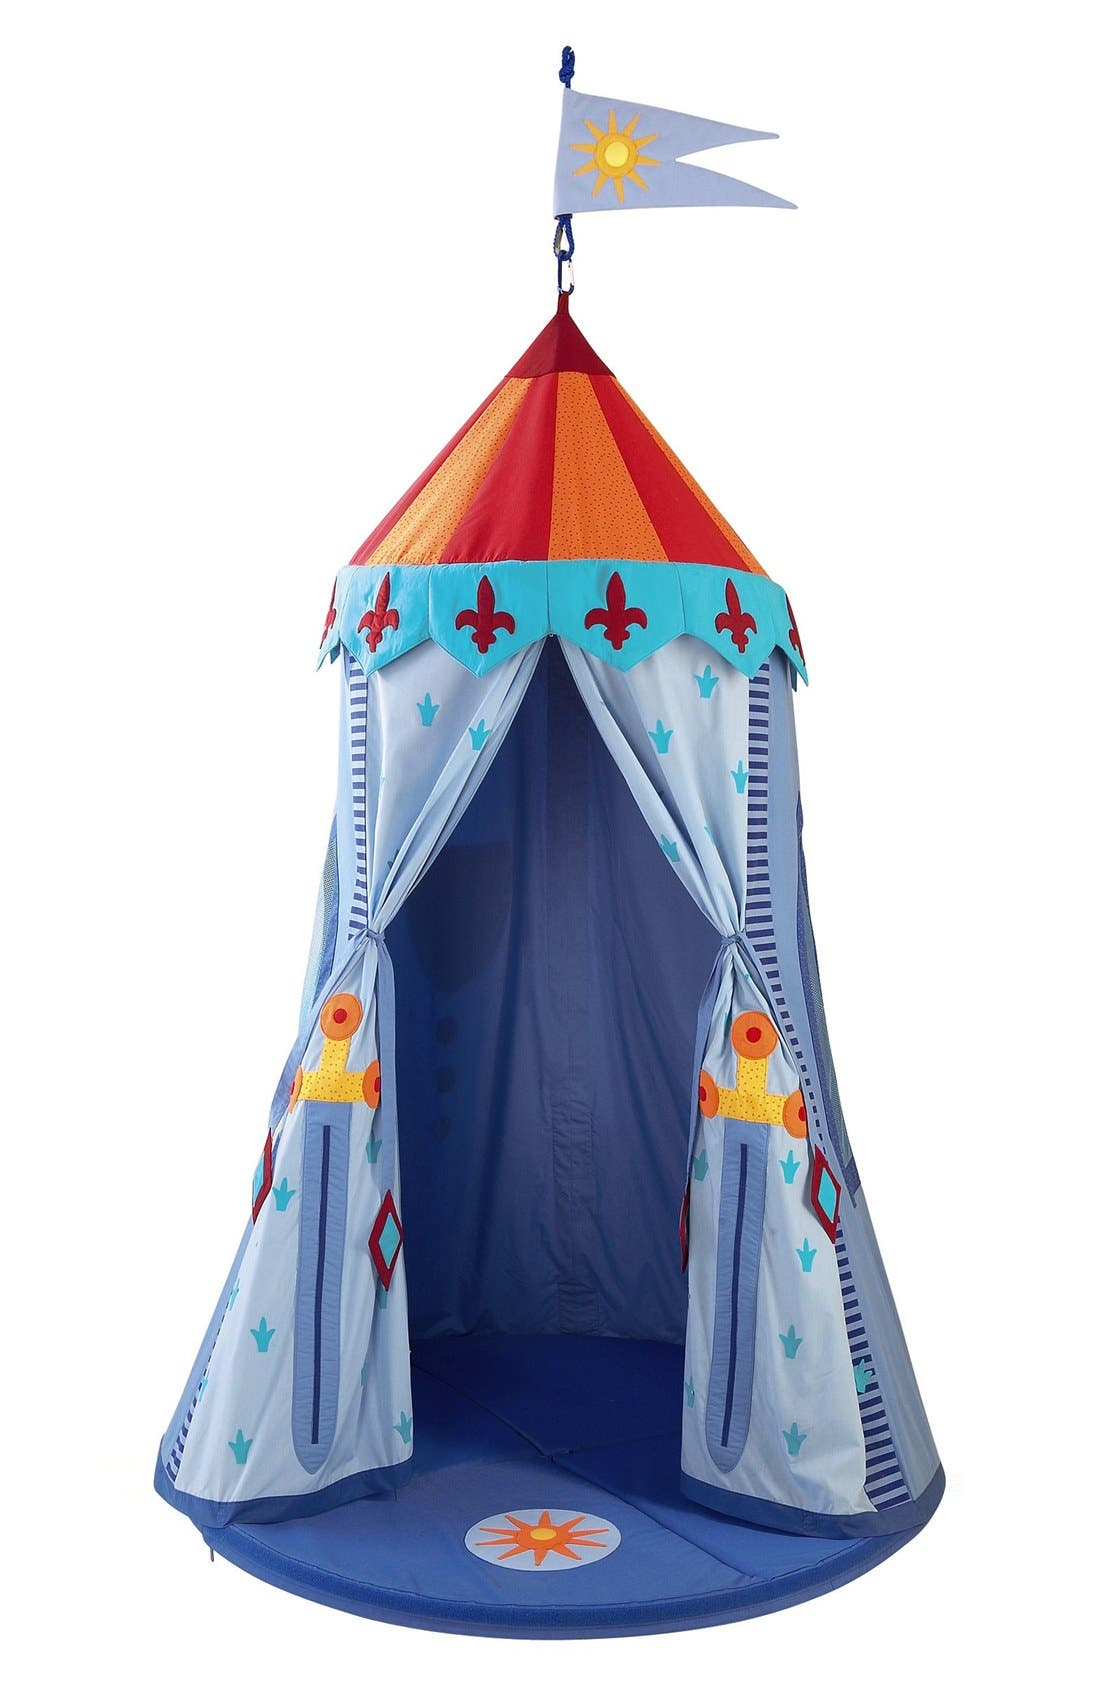 HABA 'Knights' Hanging Play Tent